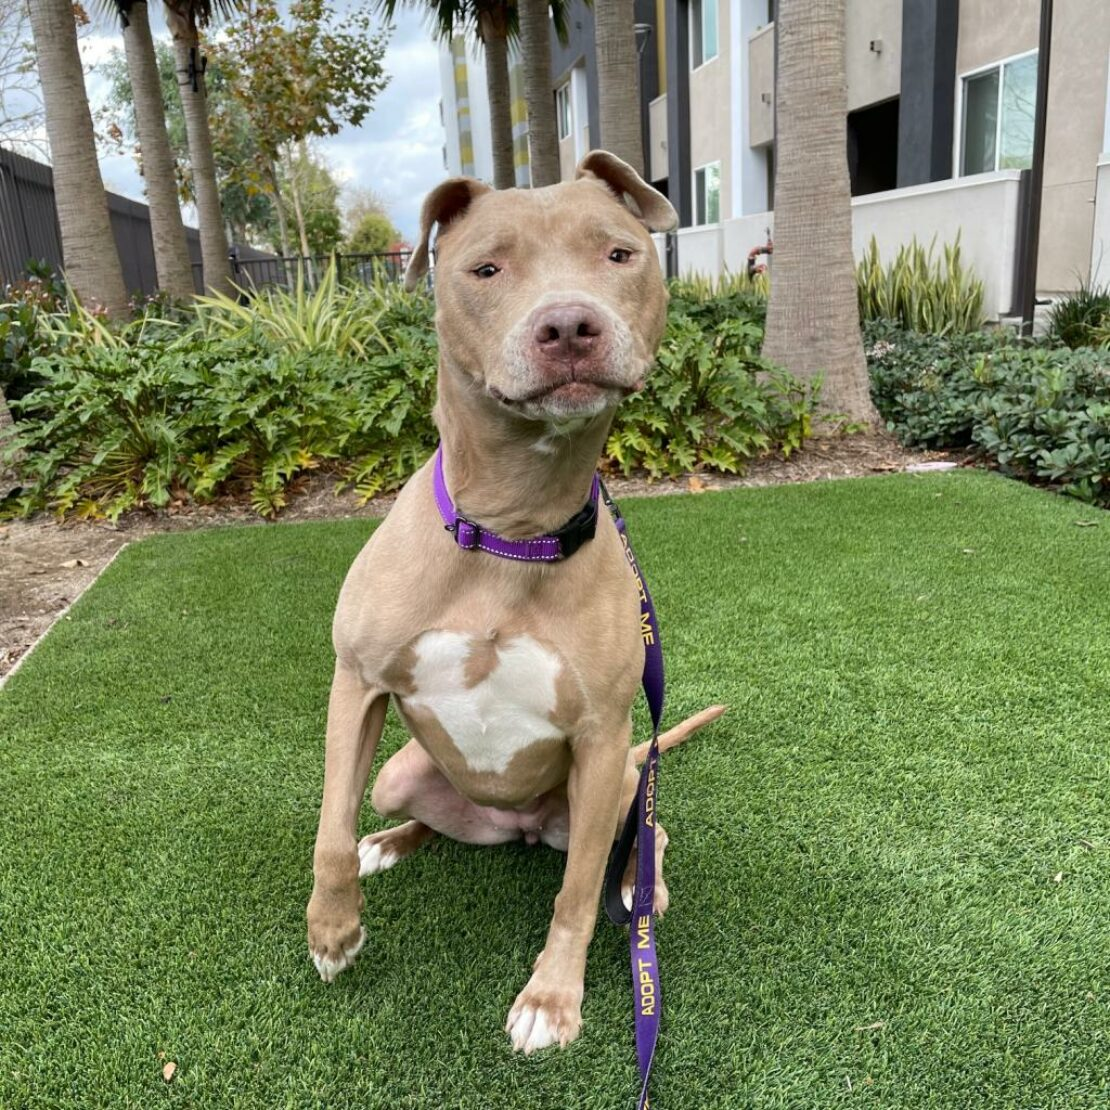 tan pit bull sitting up, one paw up, on grass